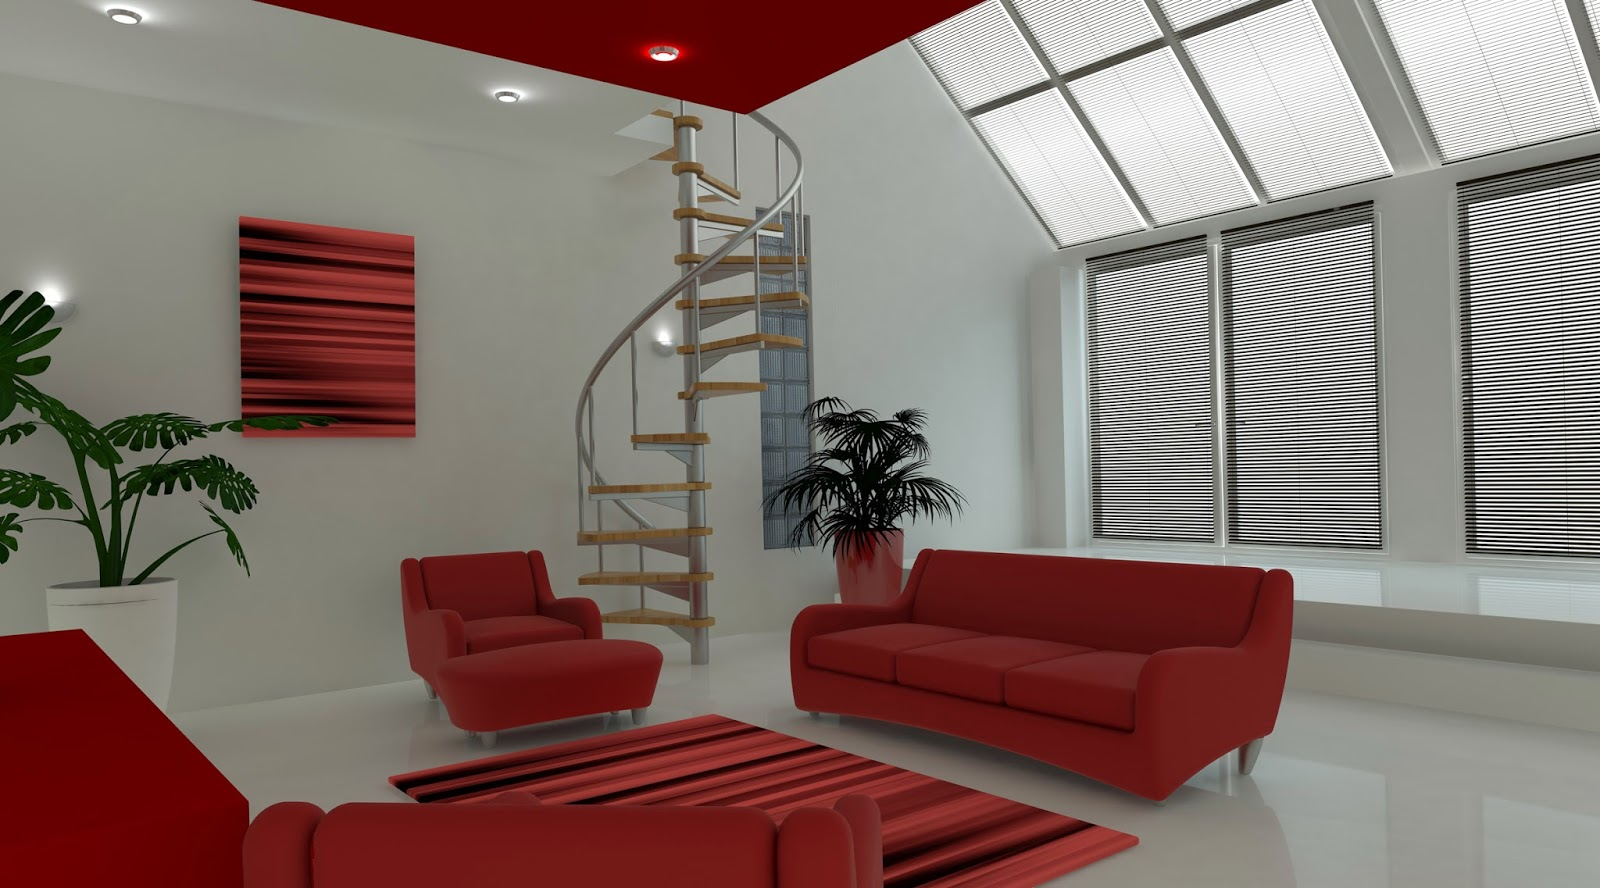 Paint Your Room Virtually Stunning Free Interior Design Software Tool Floor Plan Design Your